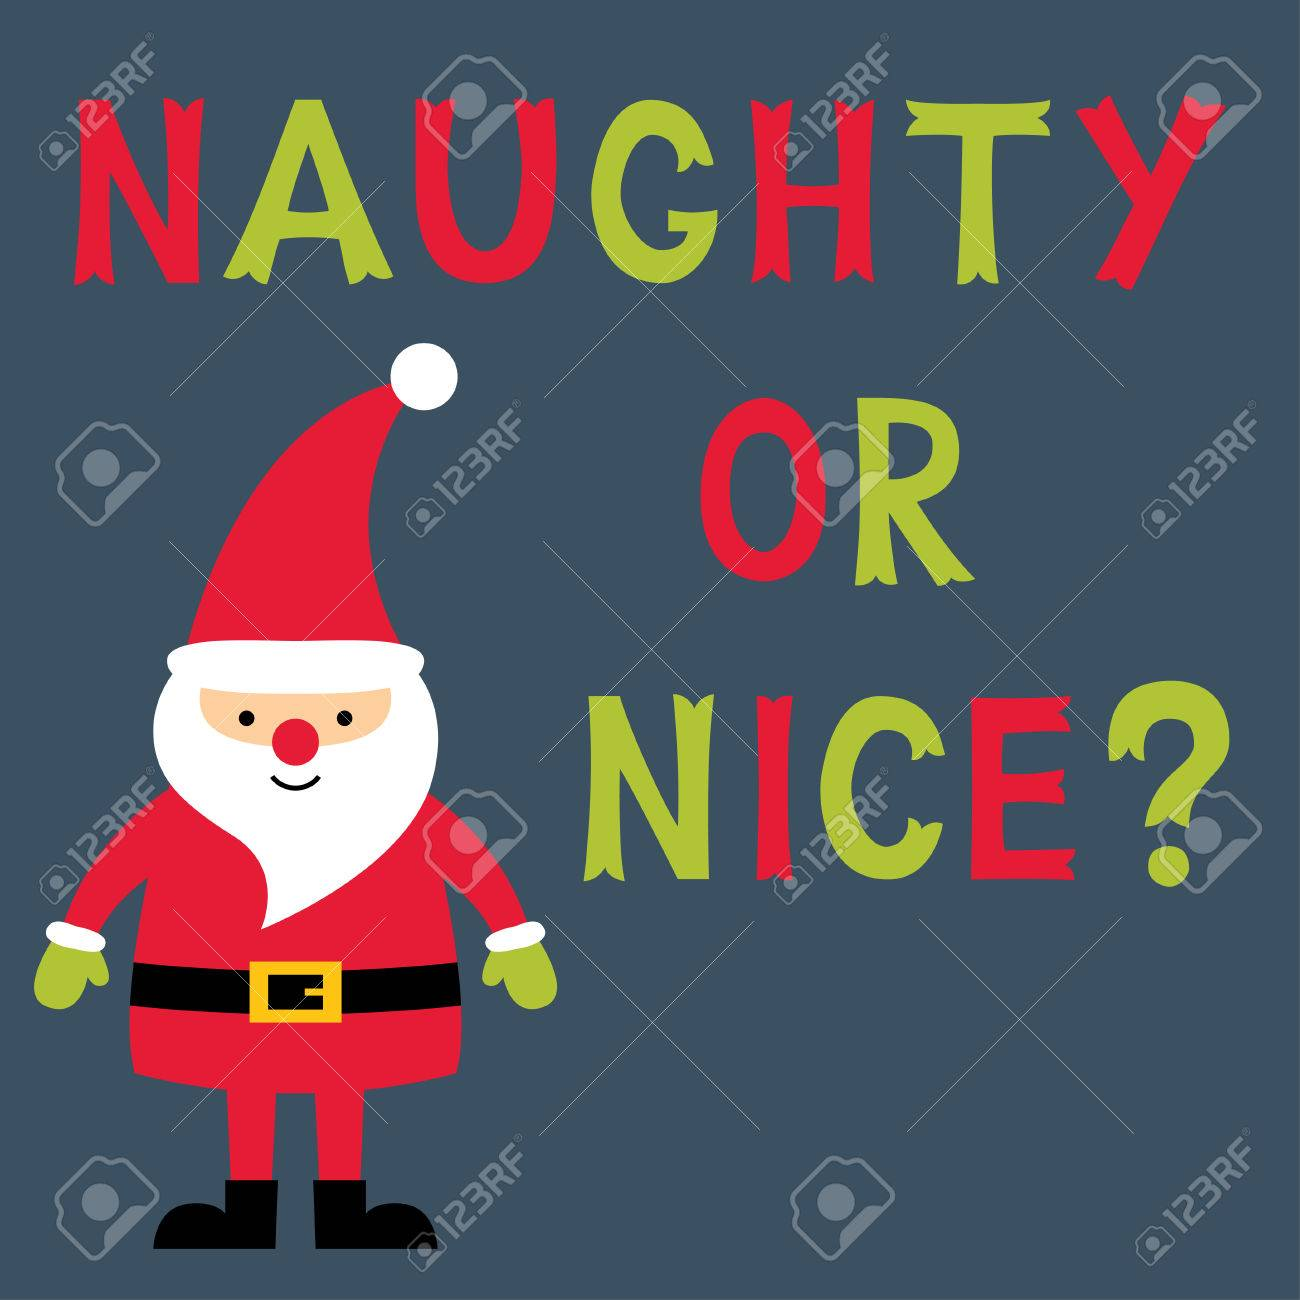 Naughty or nice text christmas greeting card text in hand lettered naughty or nice text christmas greeting card text in hand lettered font stock vector m4hsunfo